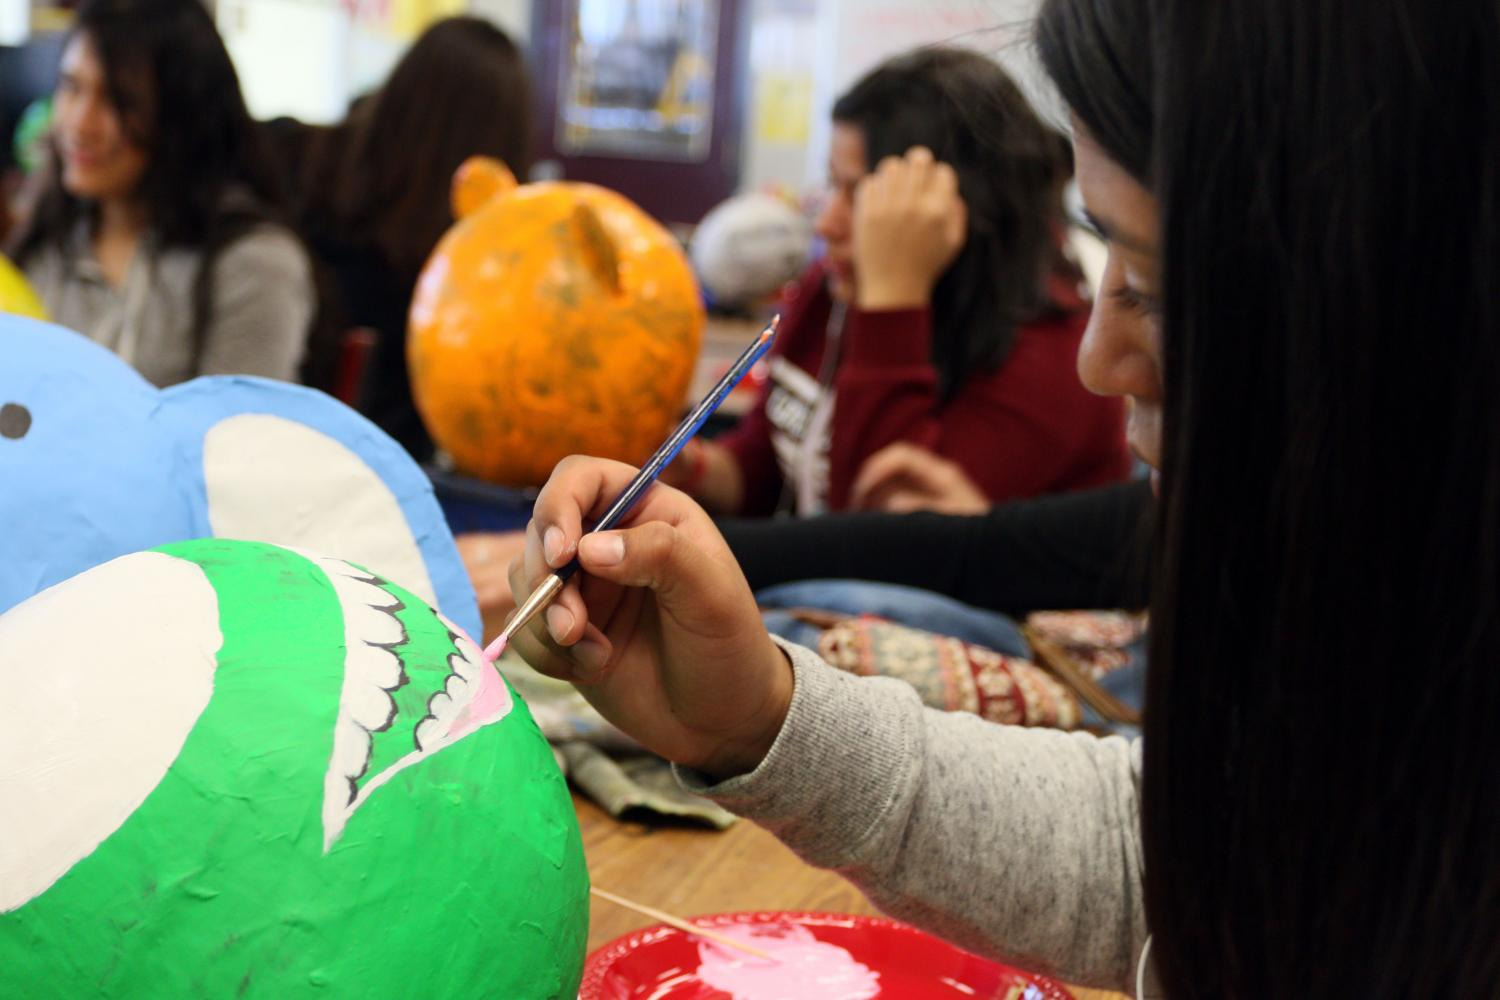 Freshmen Ivie Leyva is painting the mouth onto her paper mache character, Mike Wazowski.